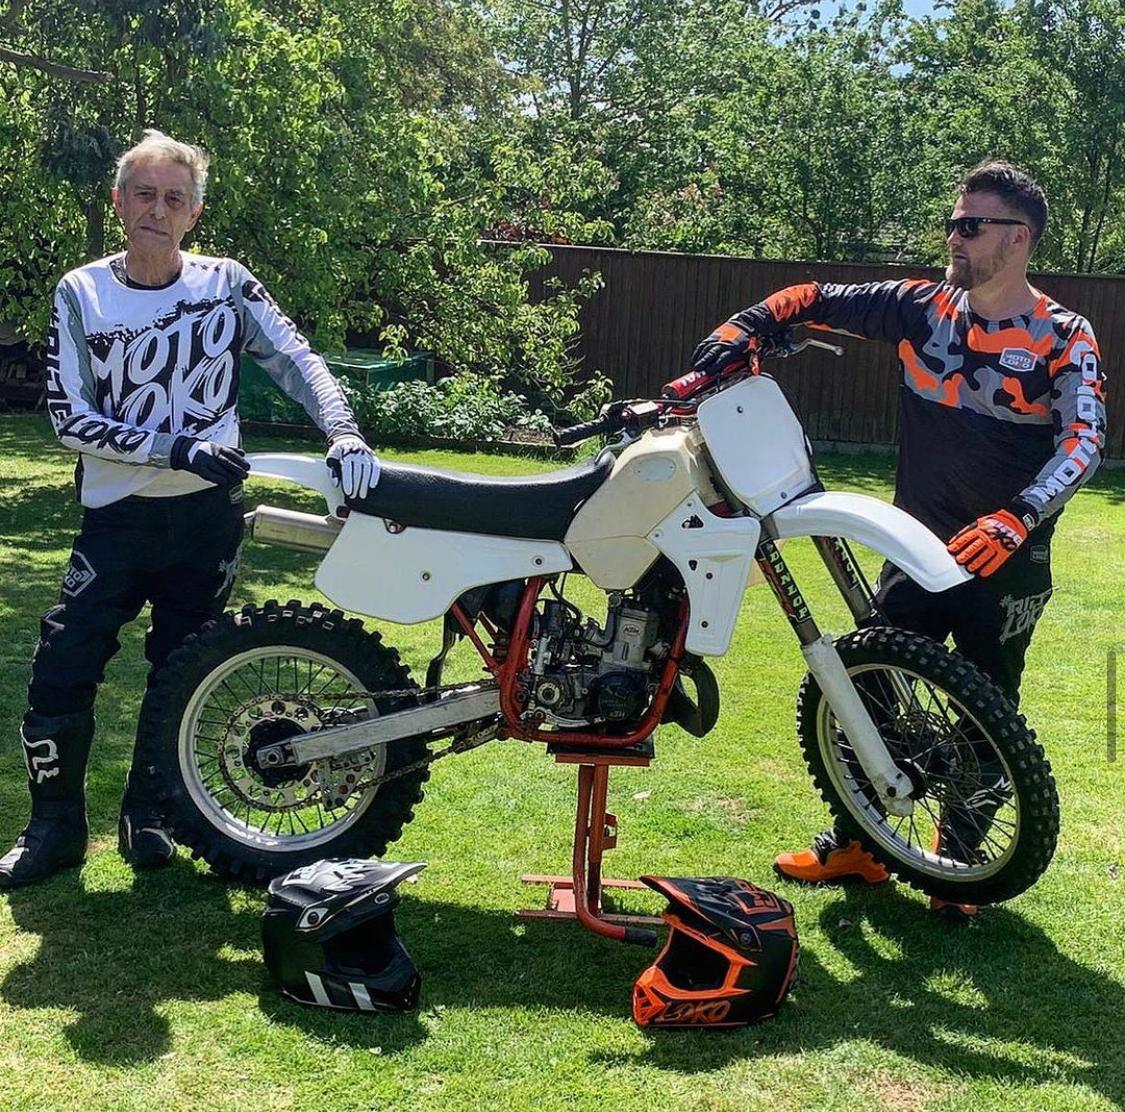 Father and son wearing motocross kits, standing either side of bike